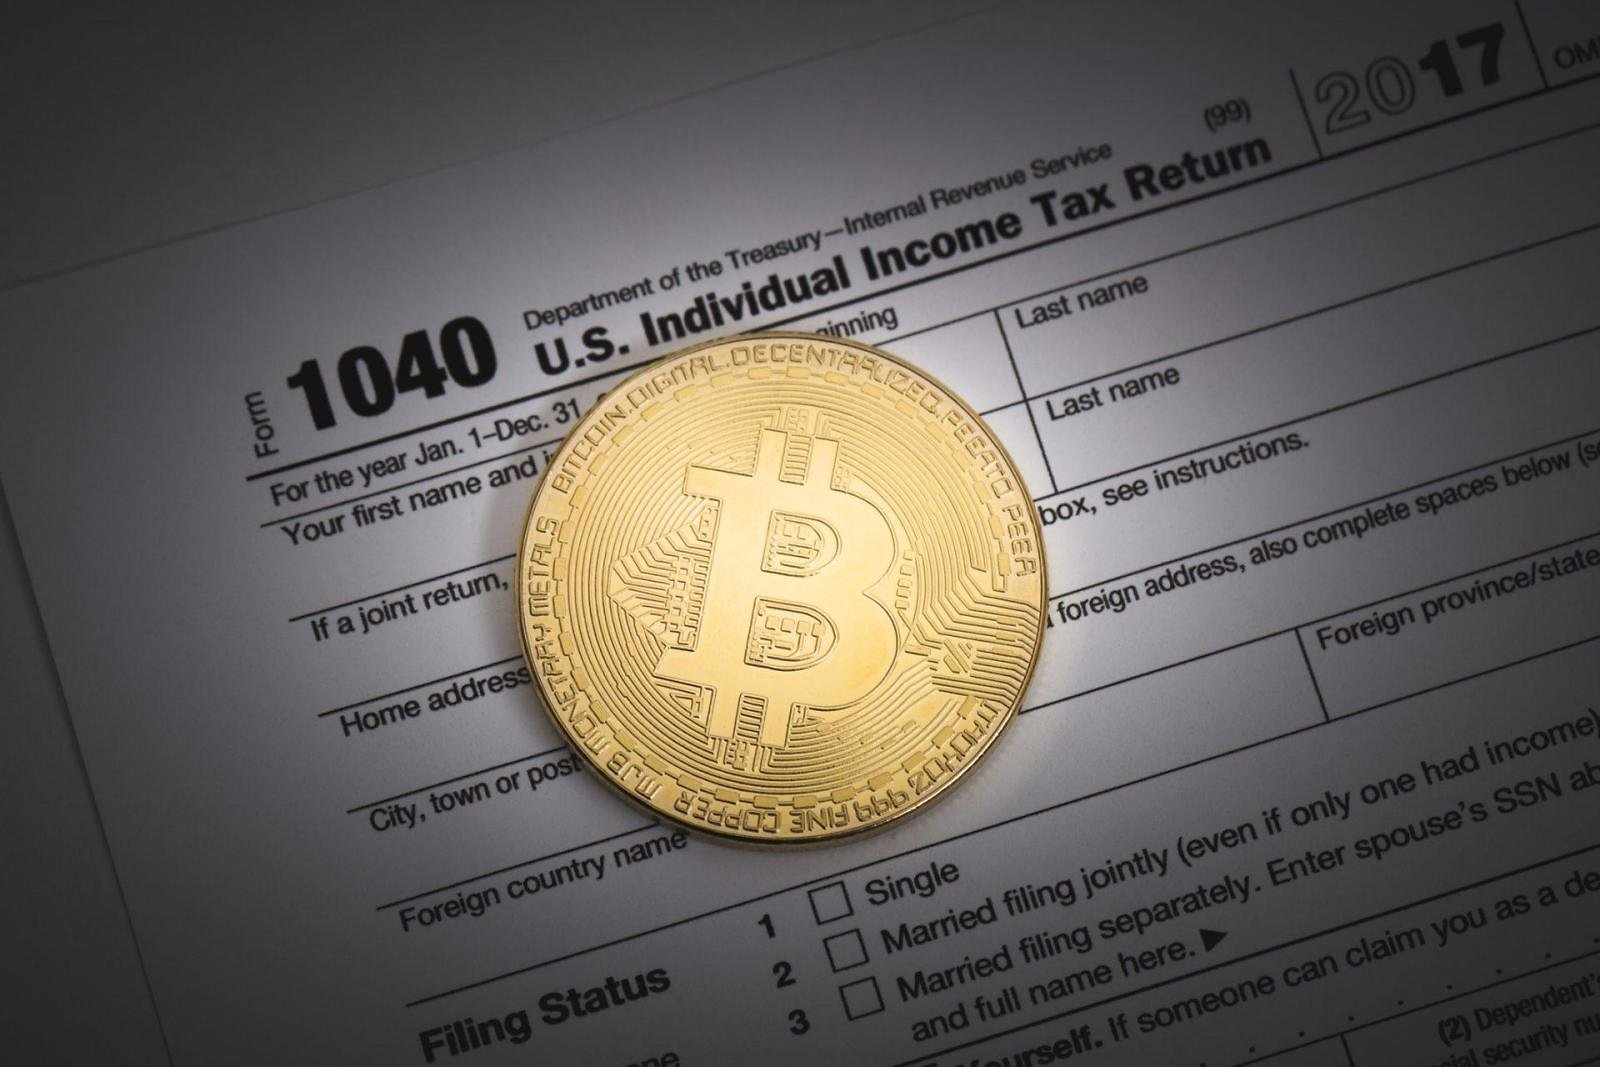 Can You Owe Taxes On Crypto? Your Stimulus Check?